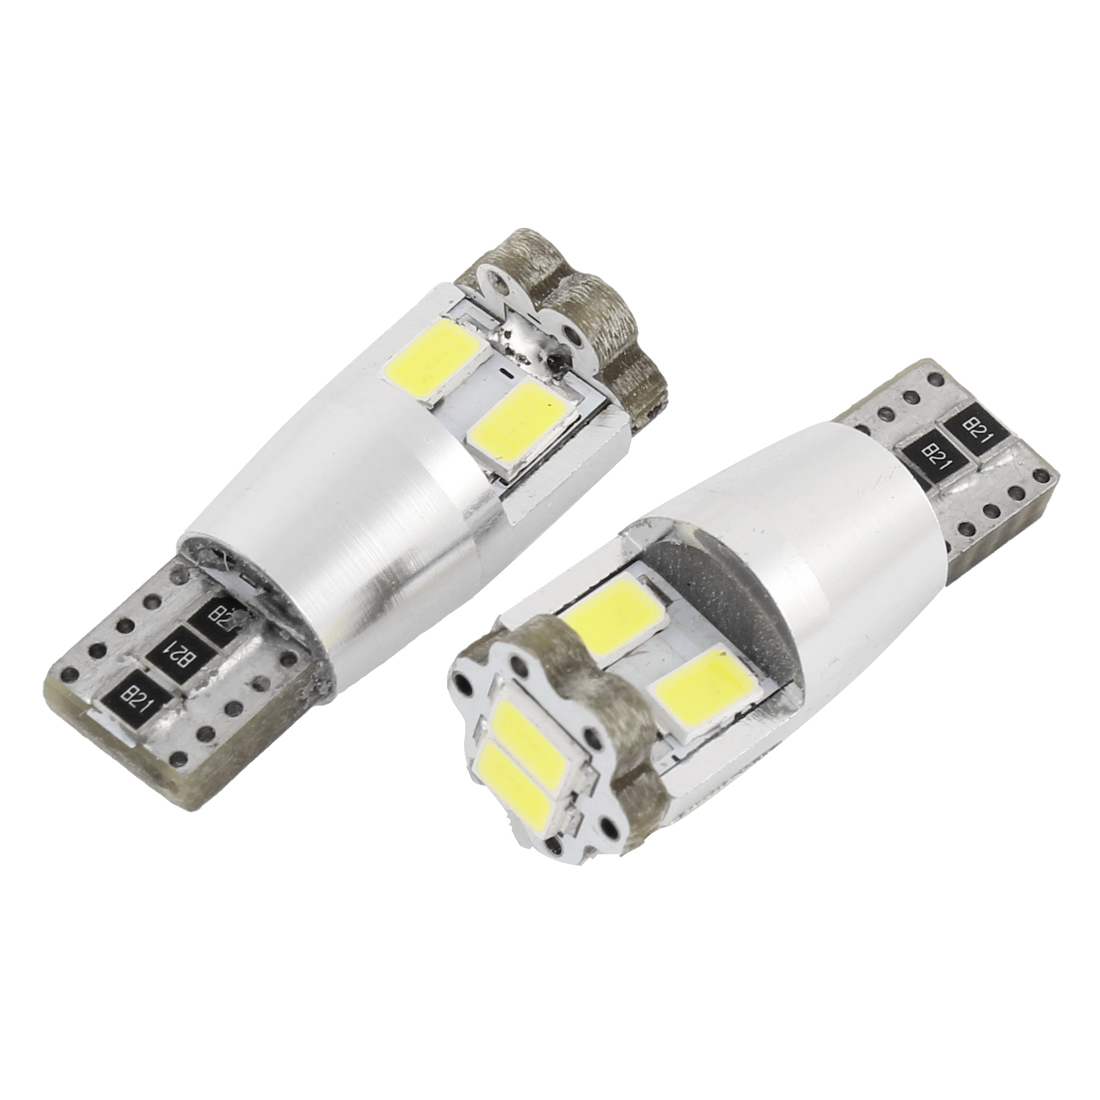 2 Pcs T10 Wedge White 5630 SMD 6 LED Canbus Light Bulb Lamp Internal